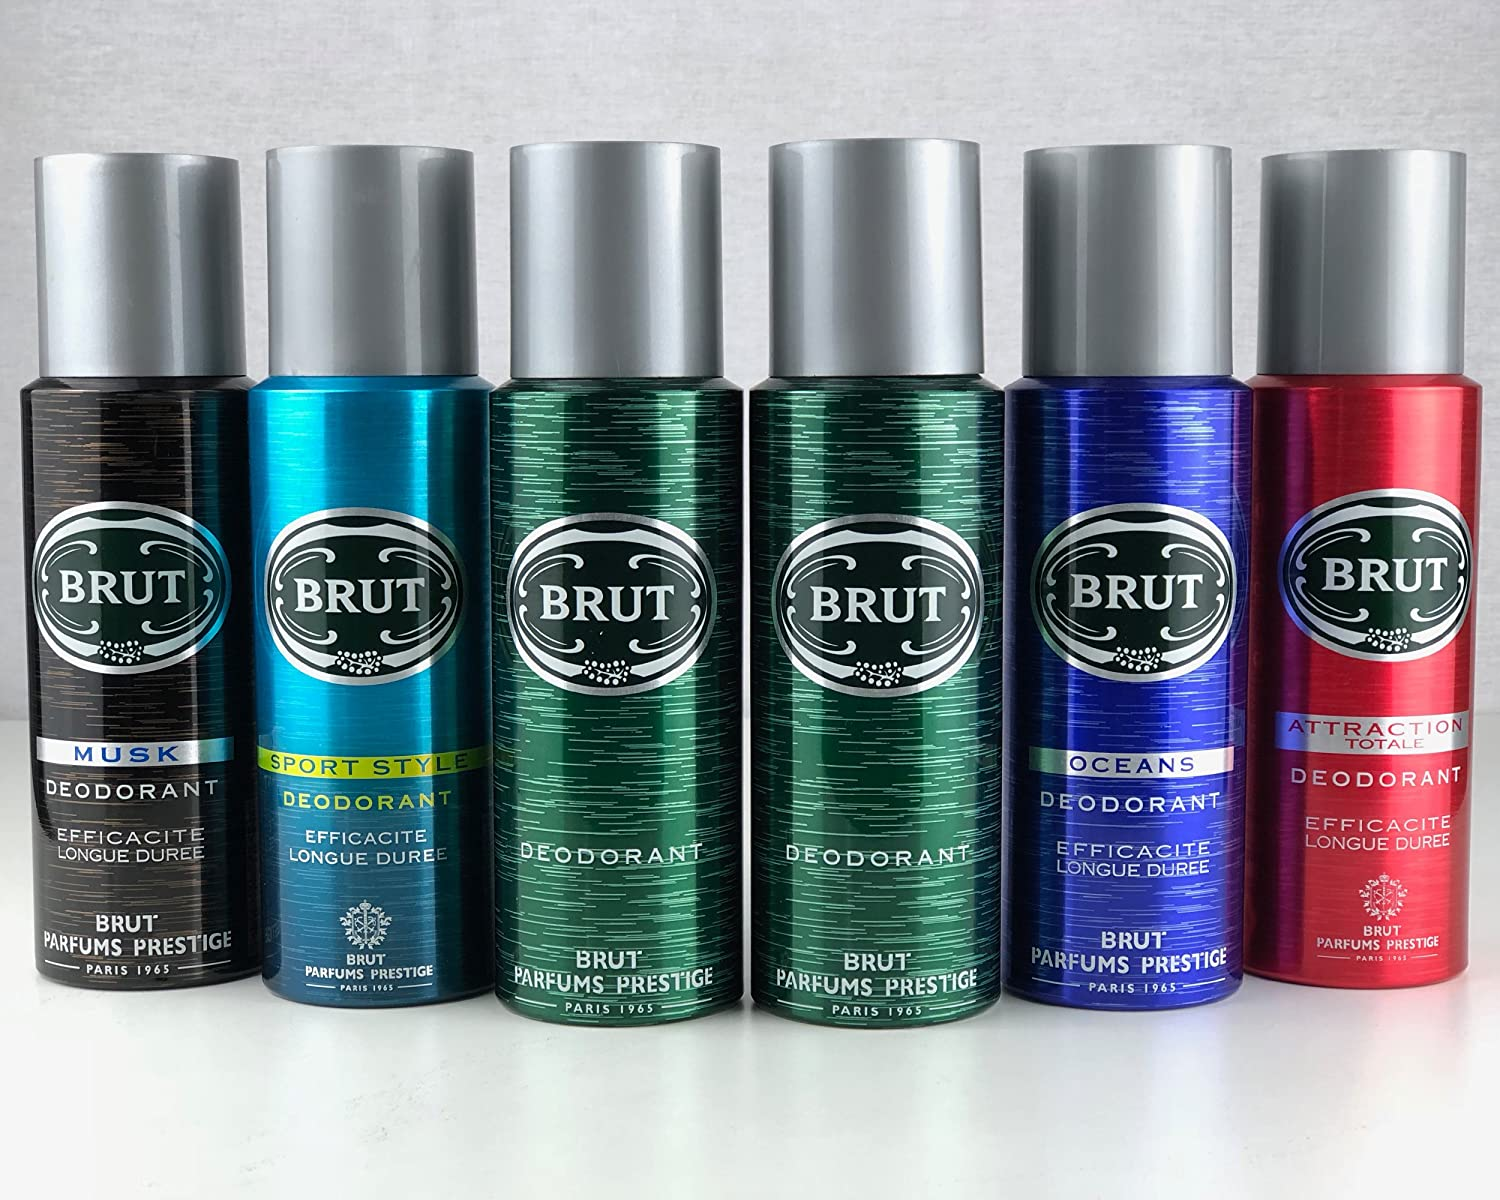 Brut Body Spray Deodorant Bundle 6 X 200ml 2 X Original 200ml 1 X